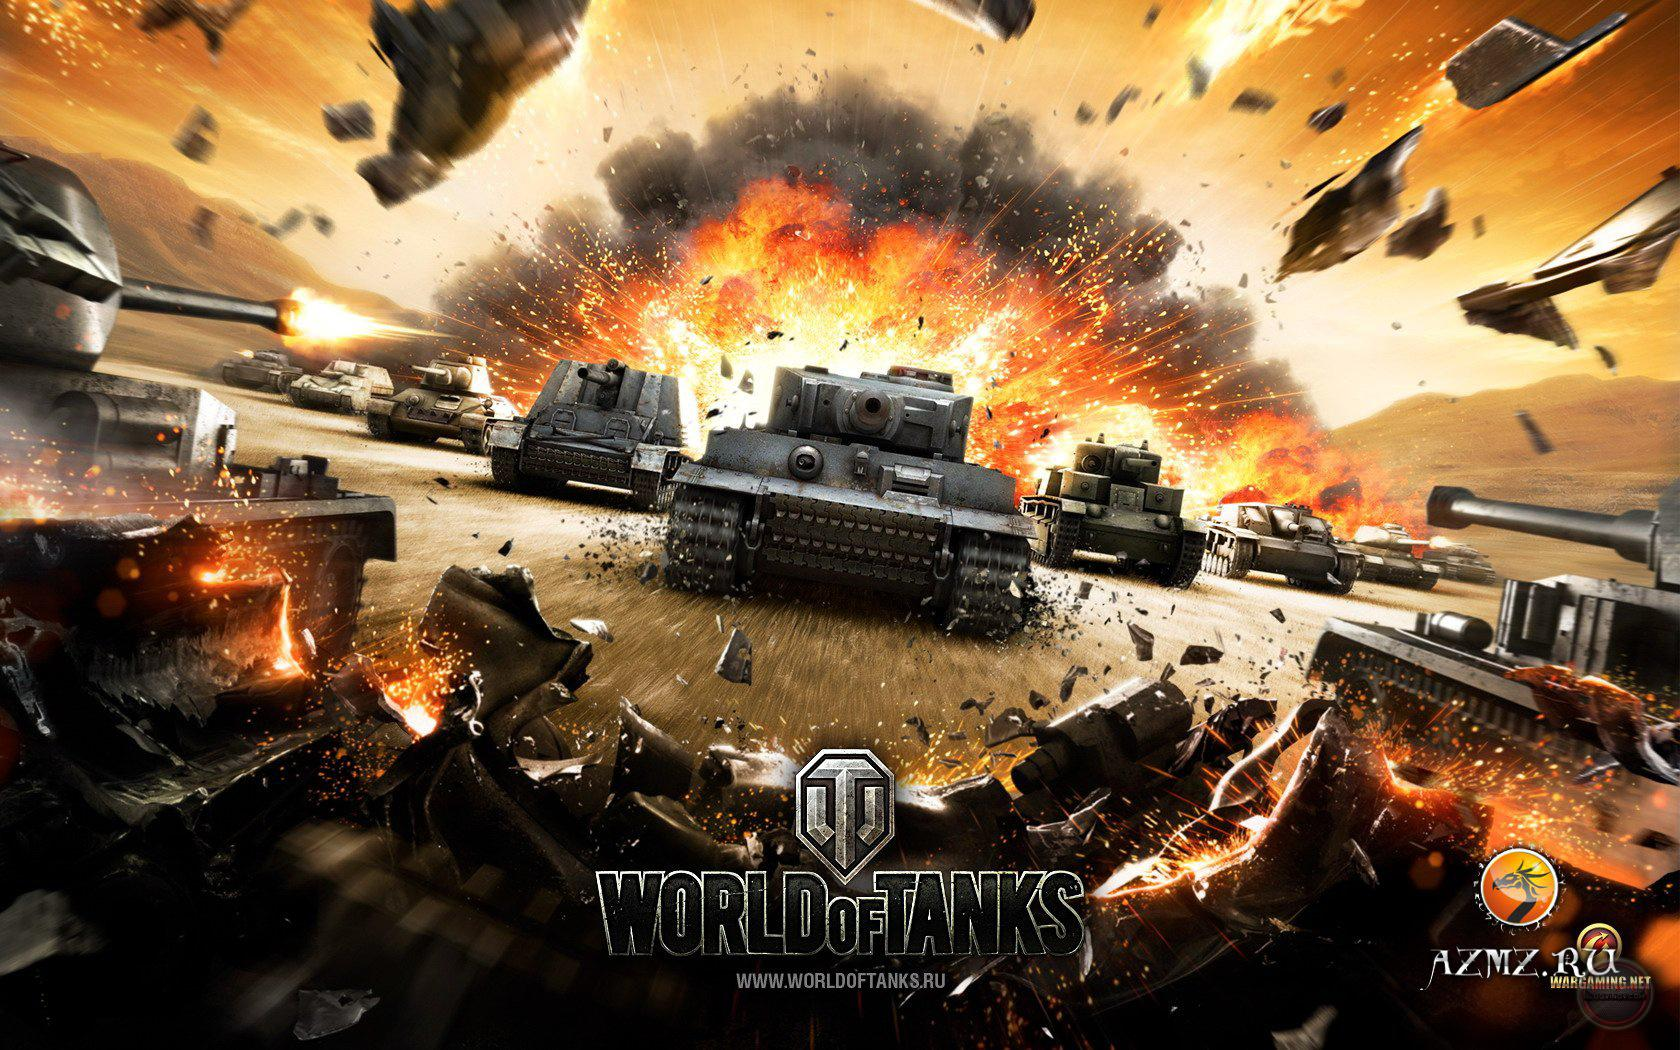 world-of-tanks-hd-wallpaper-ru_1680-1050